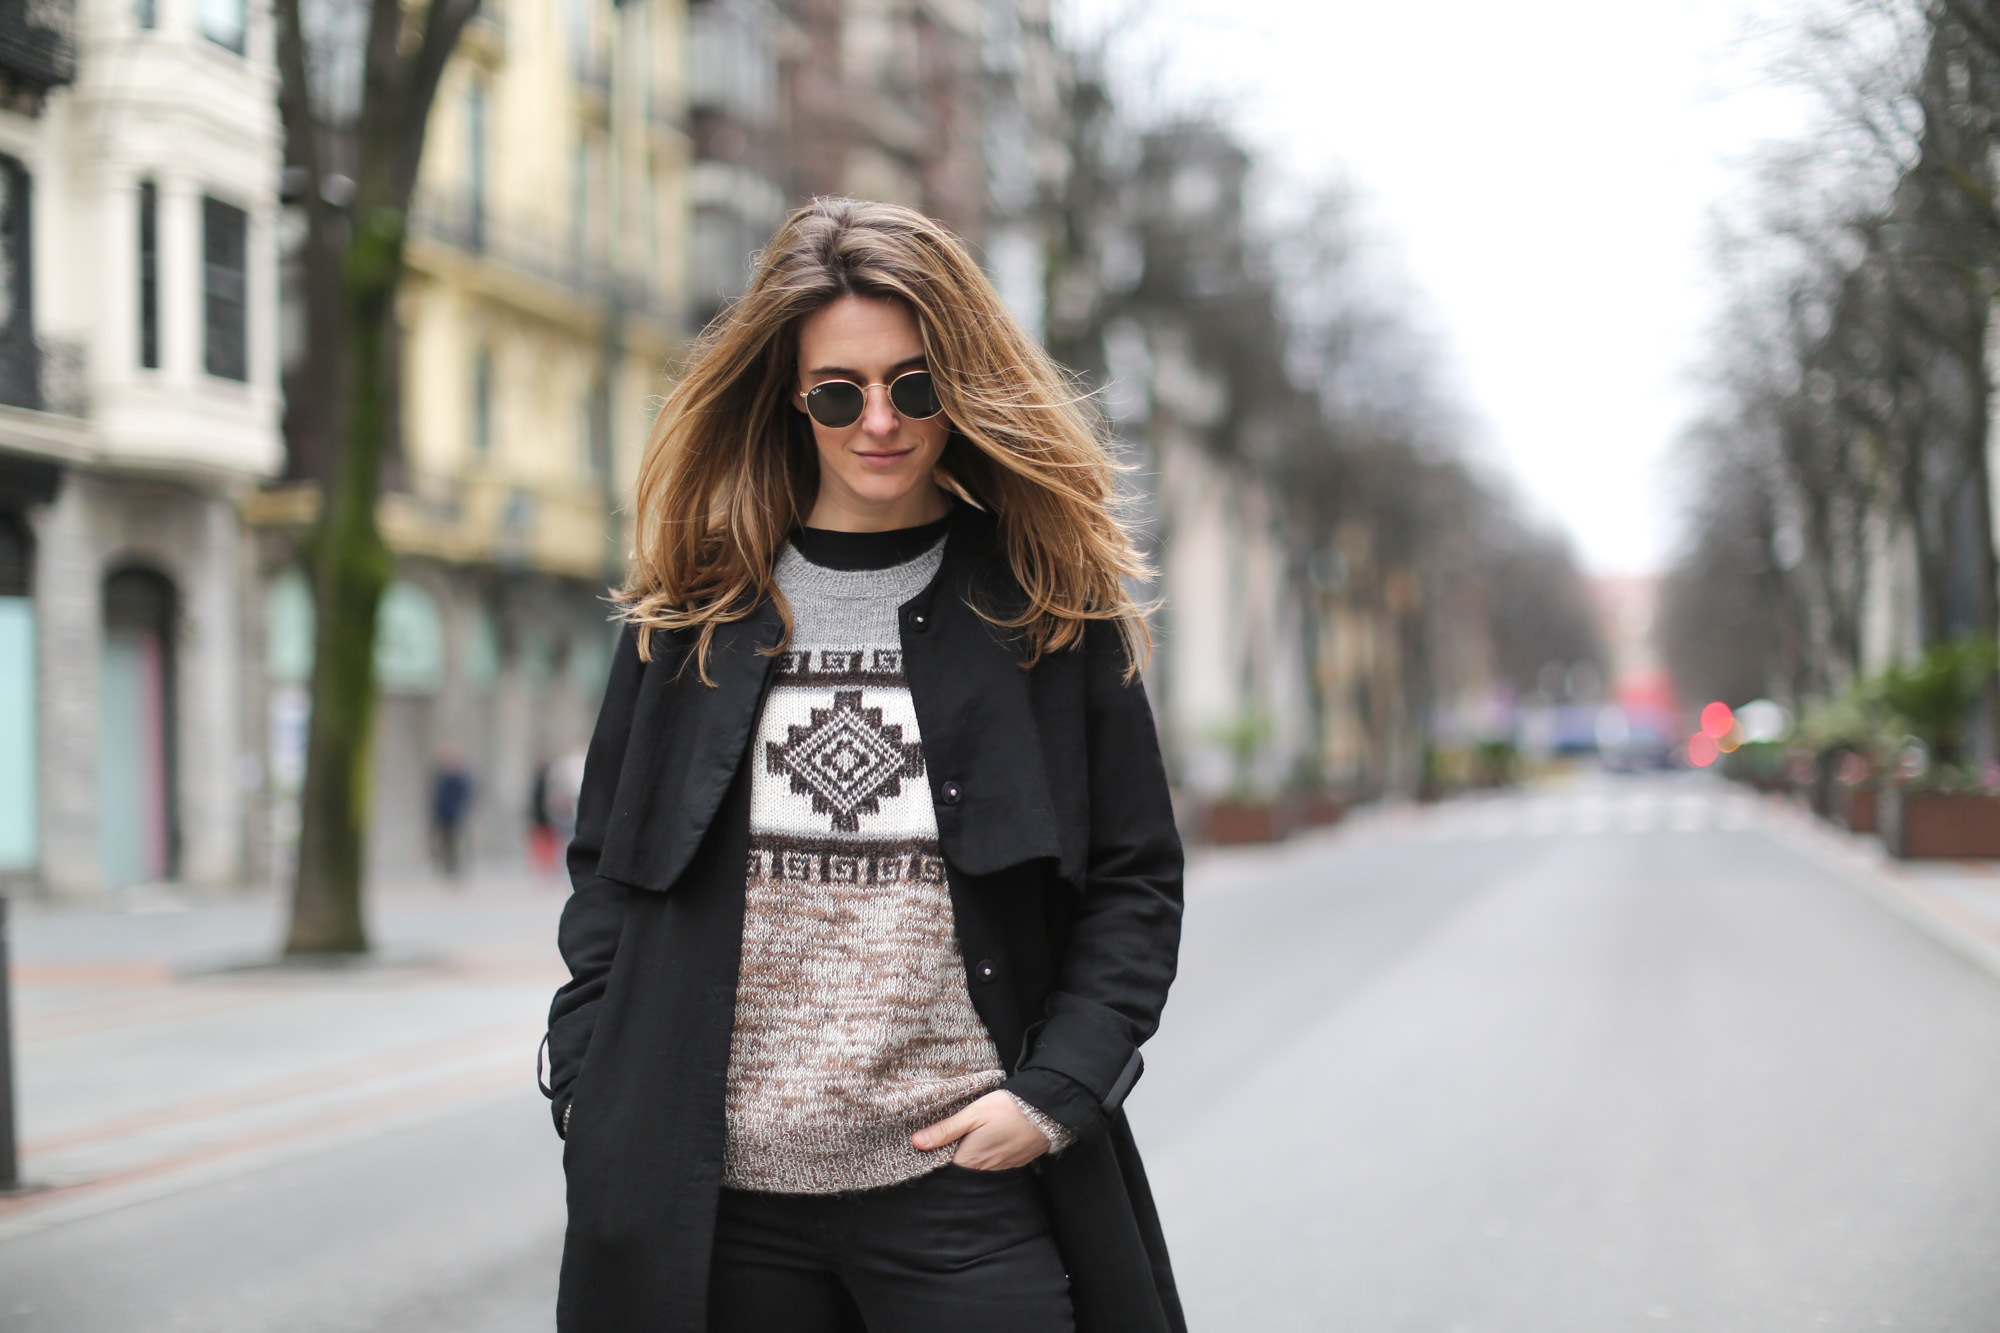 Clochet-streetstyle-isabel-marant-remington-sweater-zara-black-flared-jeans-2